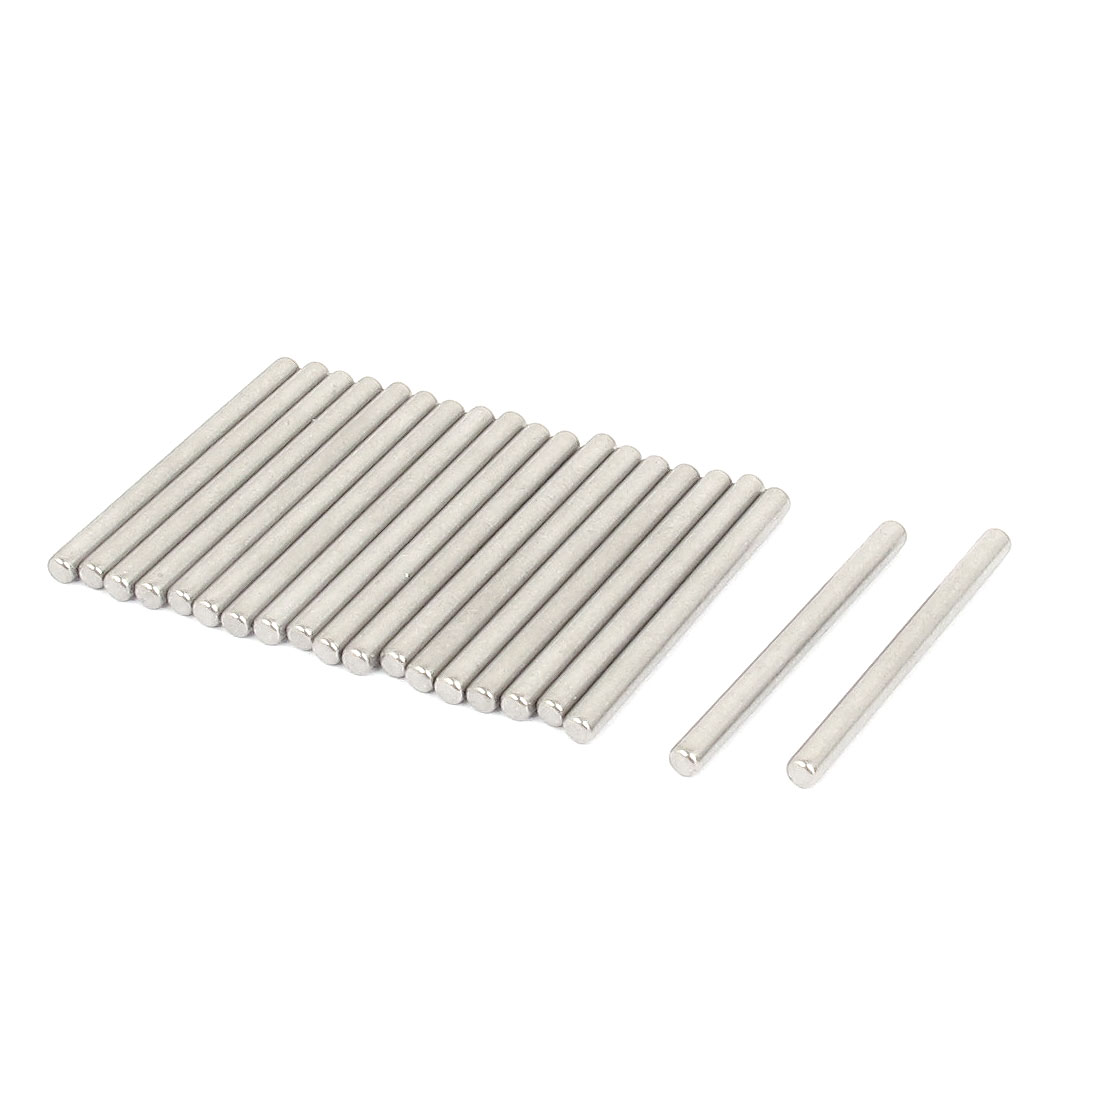 2.5mm x 30mm 304 Stainless Steel Dowel Pins Fasten Elements Silver Tone 20pcs